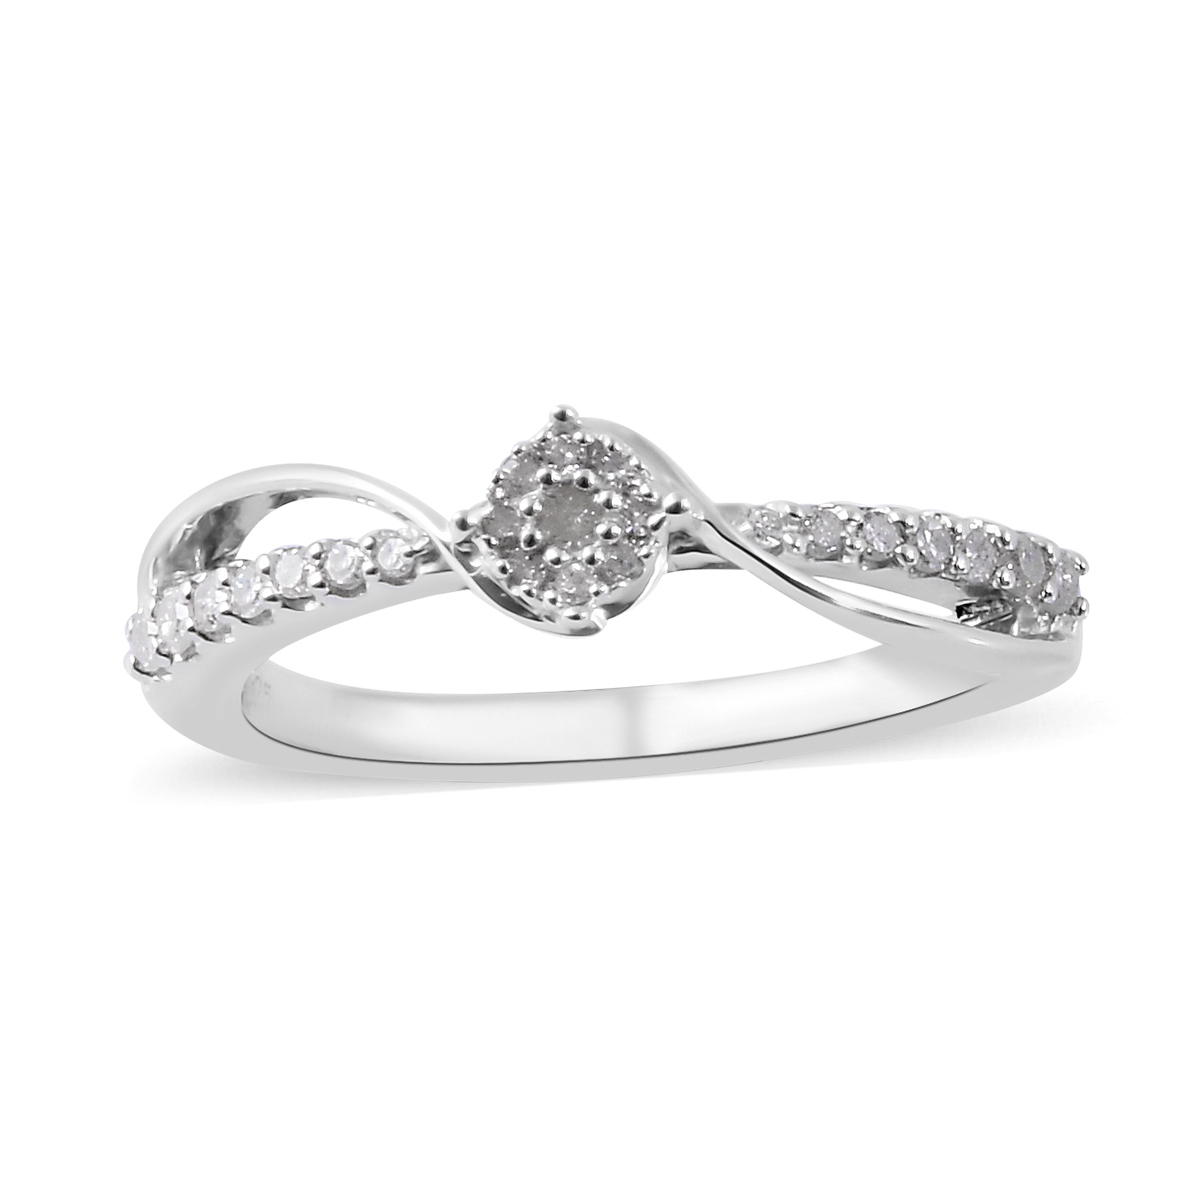 Diamond Ring In Platinum Over Sterling Silver (Size 8.0)  (View 8 of 25)